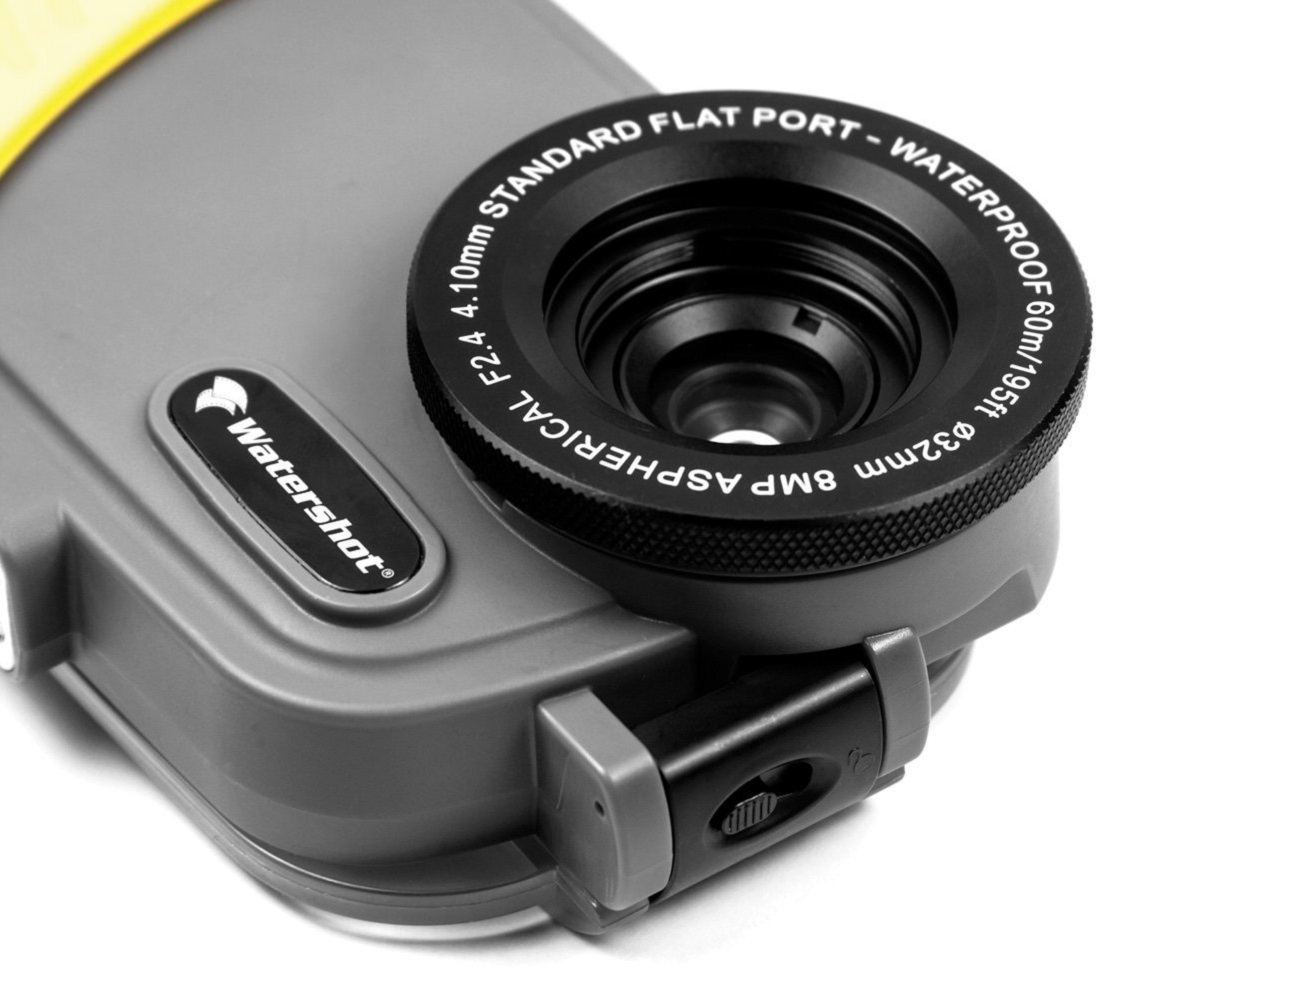 Watershot Pro Underwater iPhone 5/5S Housing